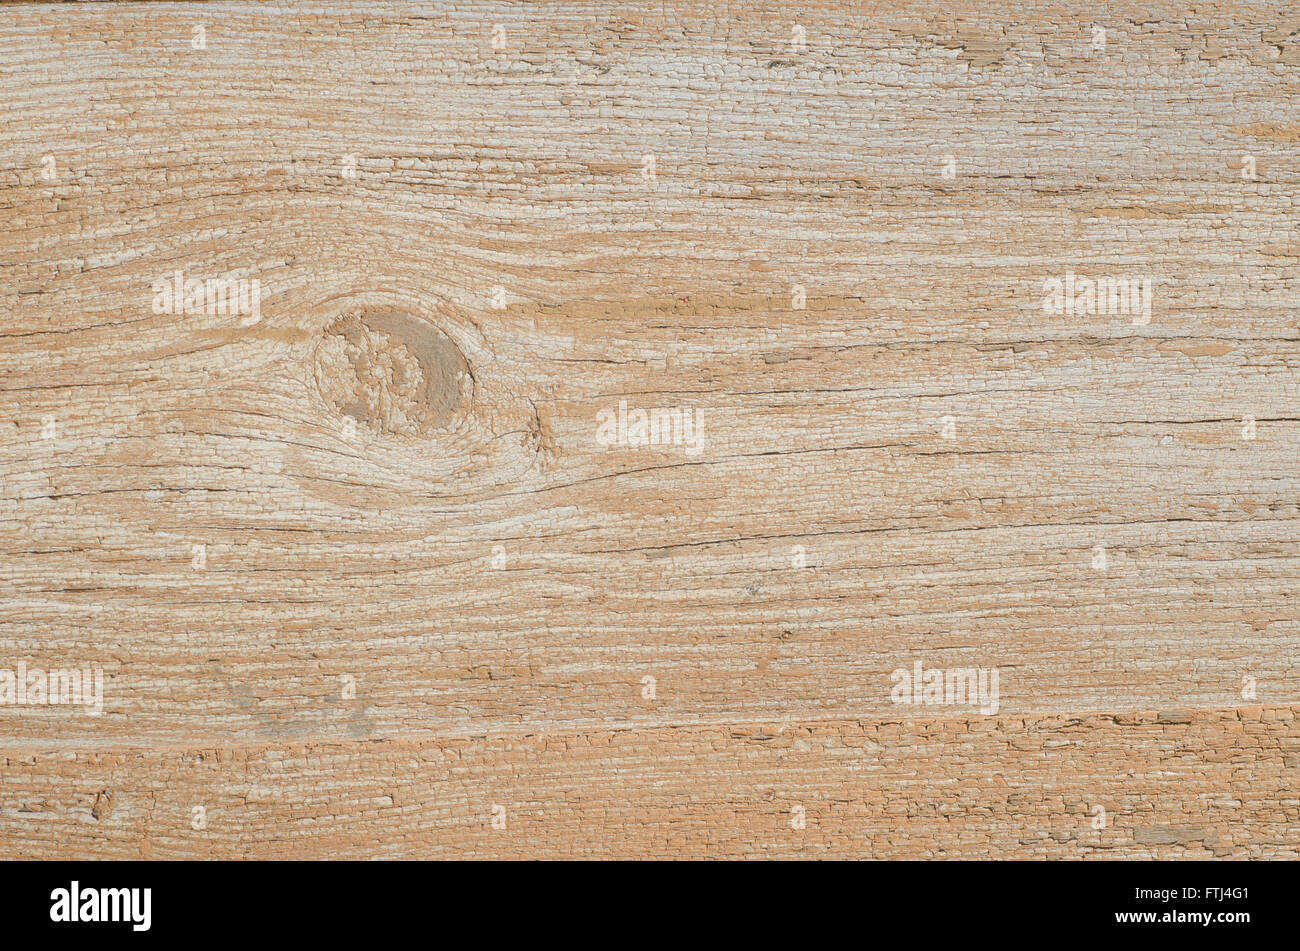 old weathered wooden wall texture - Stock Image